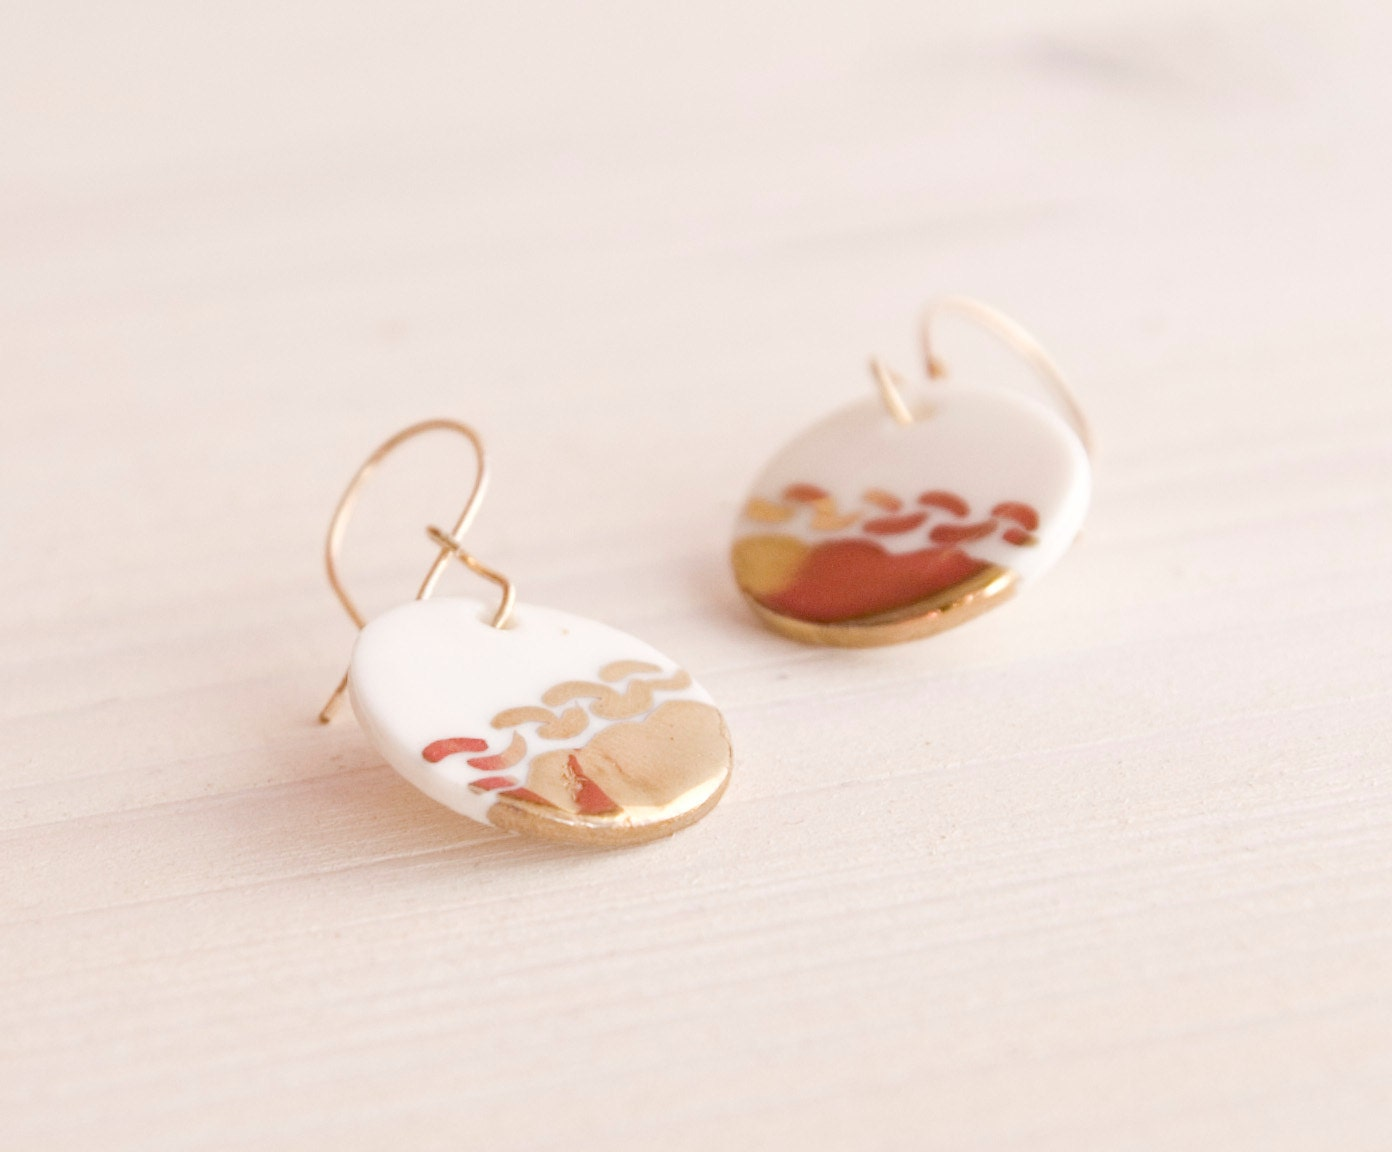 Dangle earrigs gold and porcelain - white porcelain on gold plated hooks, disc porcelain jewelry, modern ceramic earrings, bridal earrings - jewelryfromimka